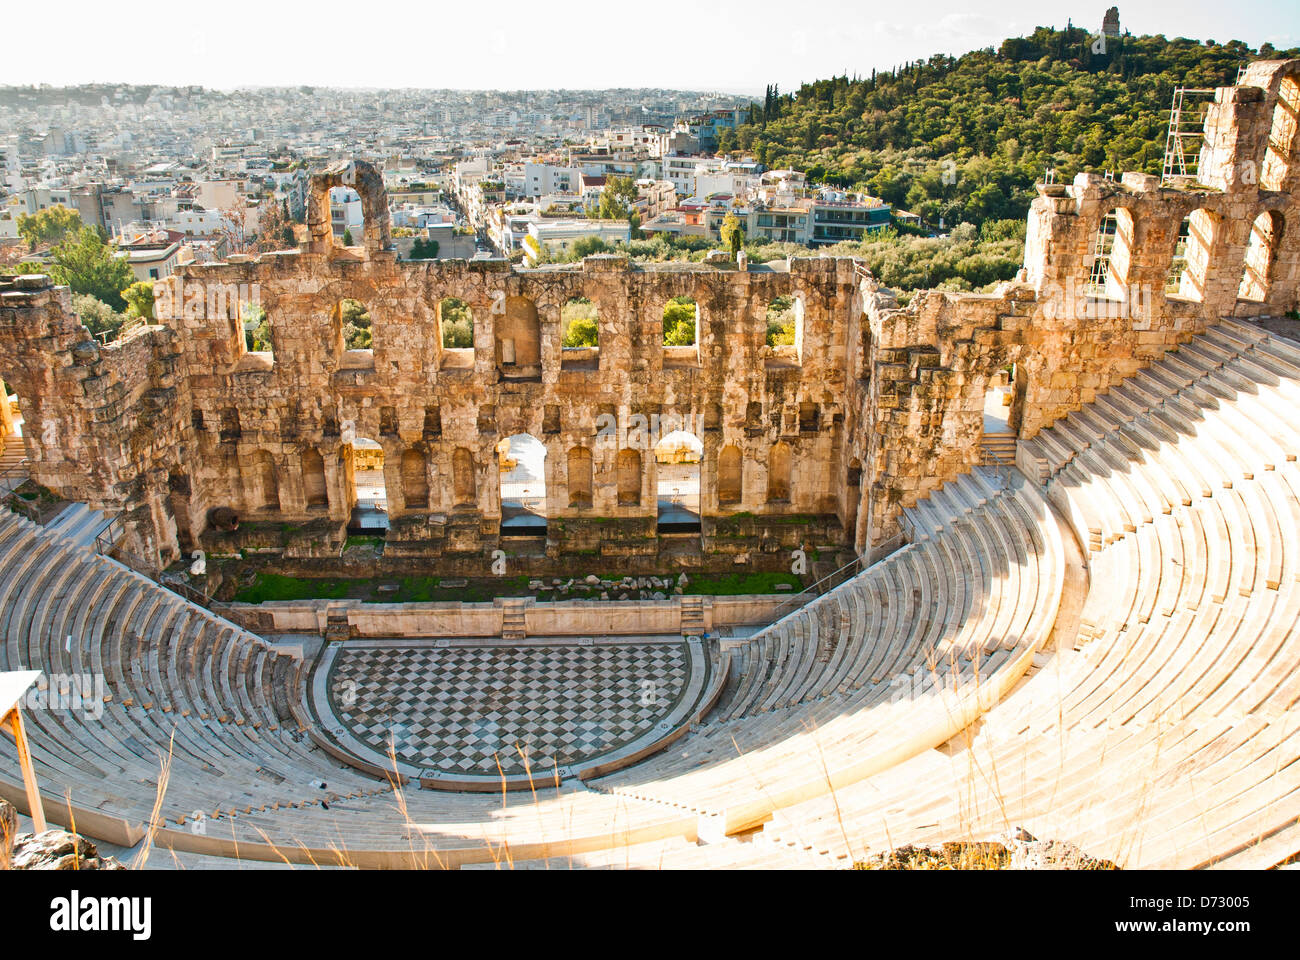 Antique Amphitheater On The Acropole In Greece Stock Photo 55999557